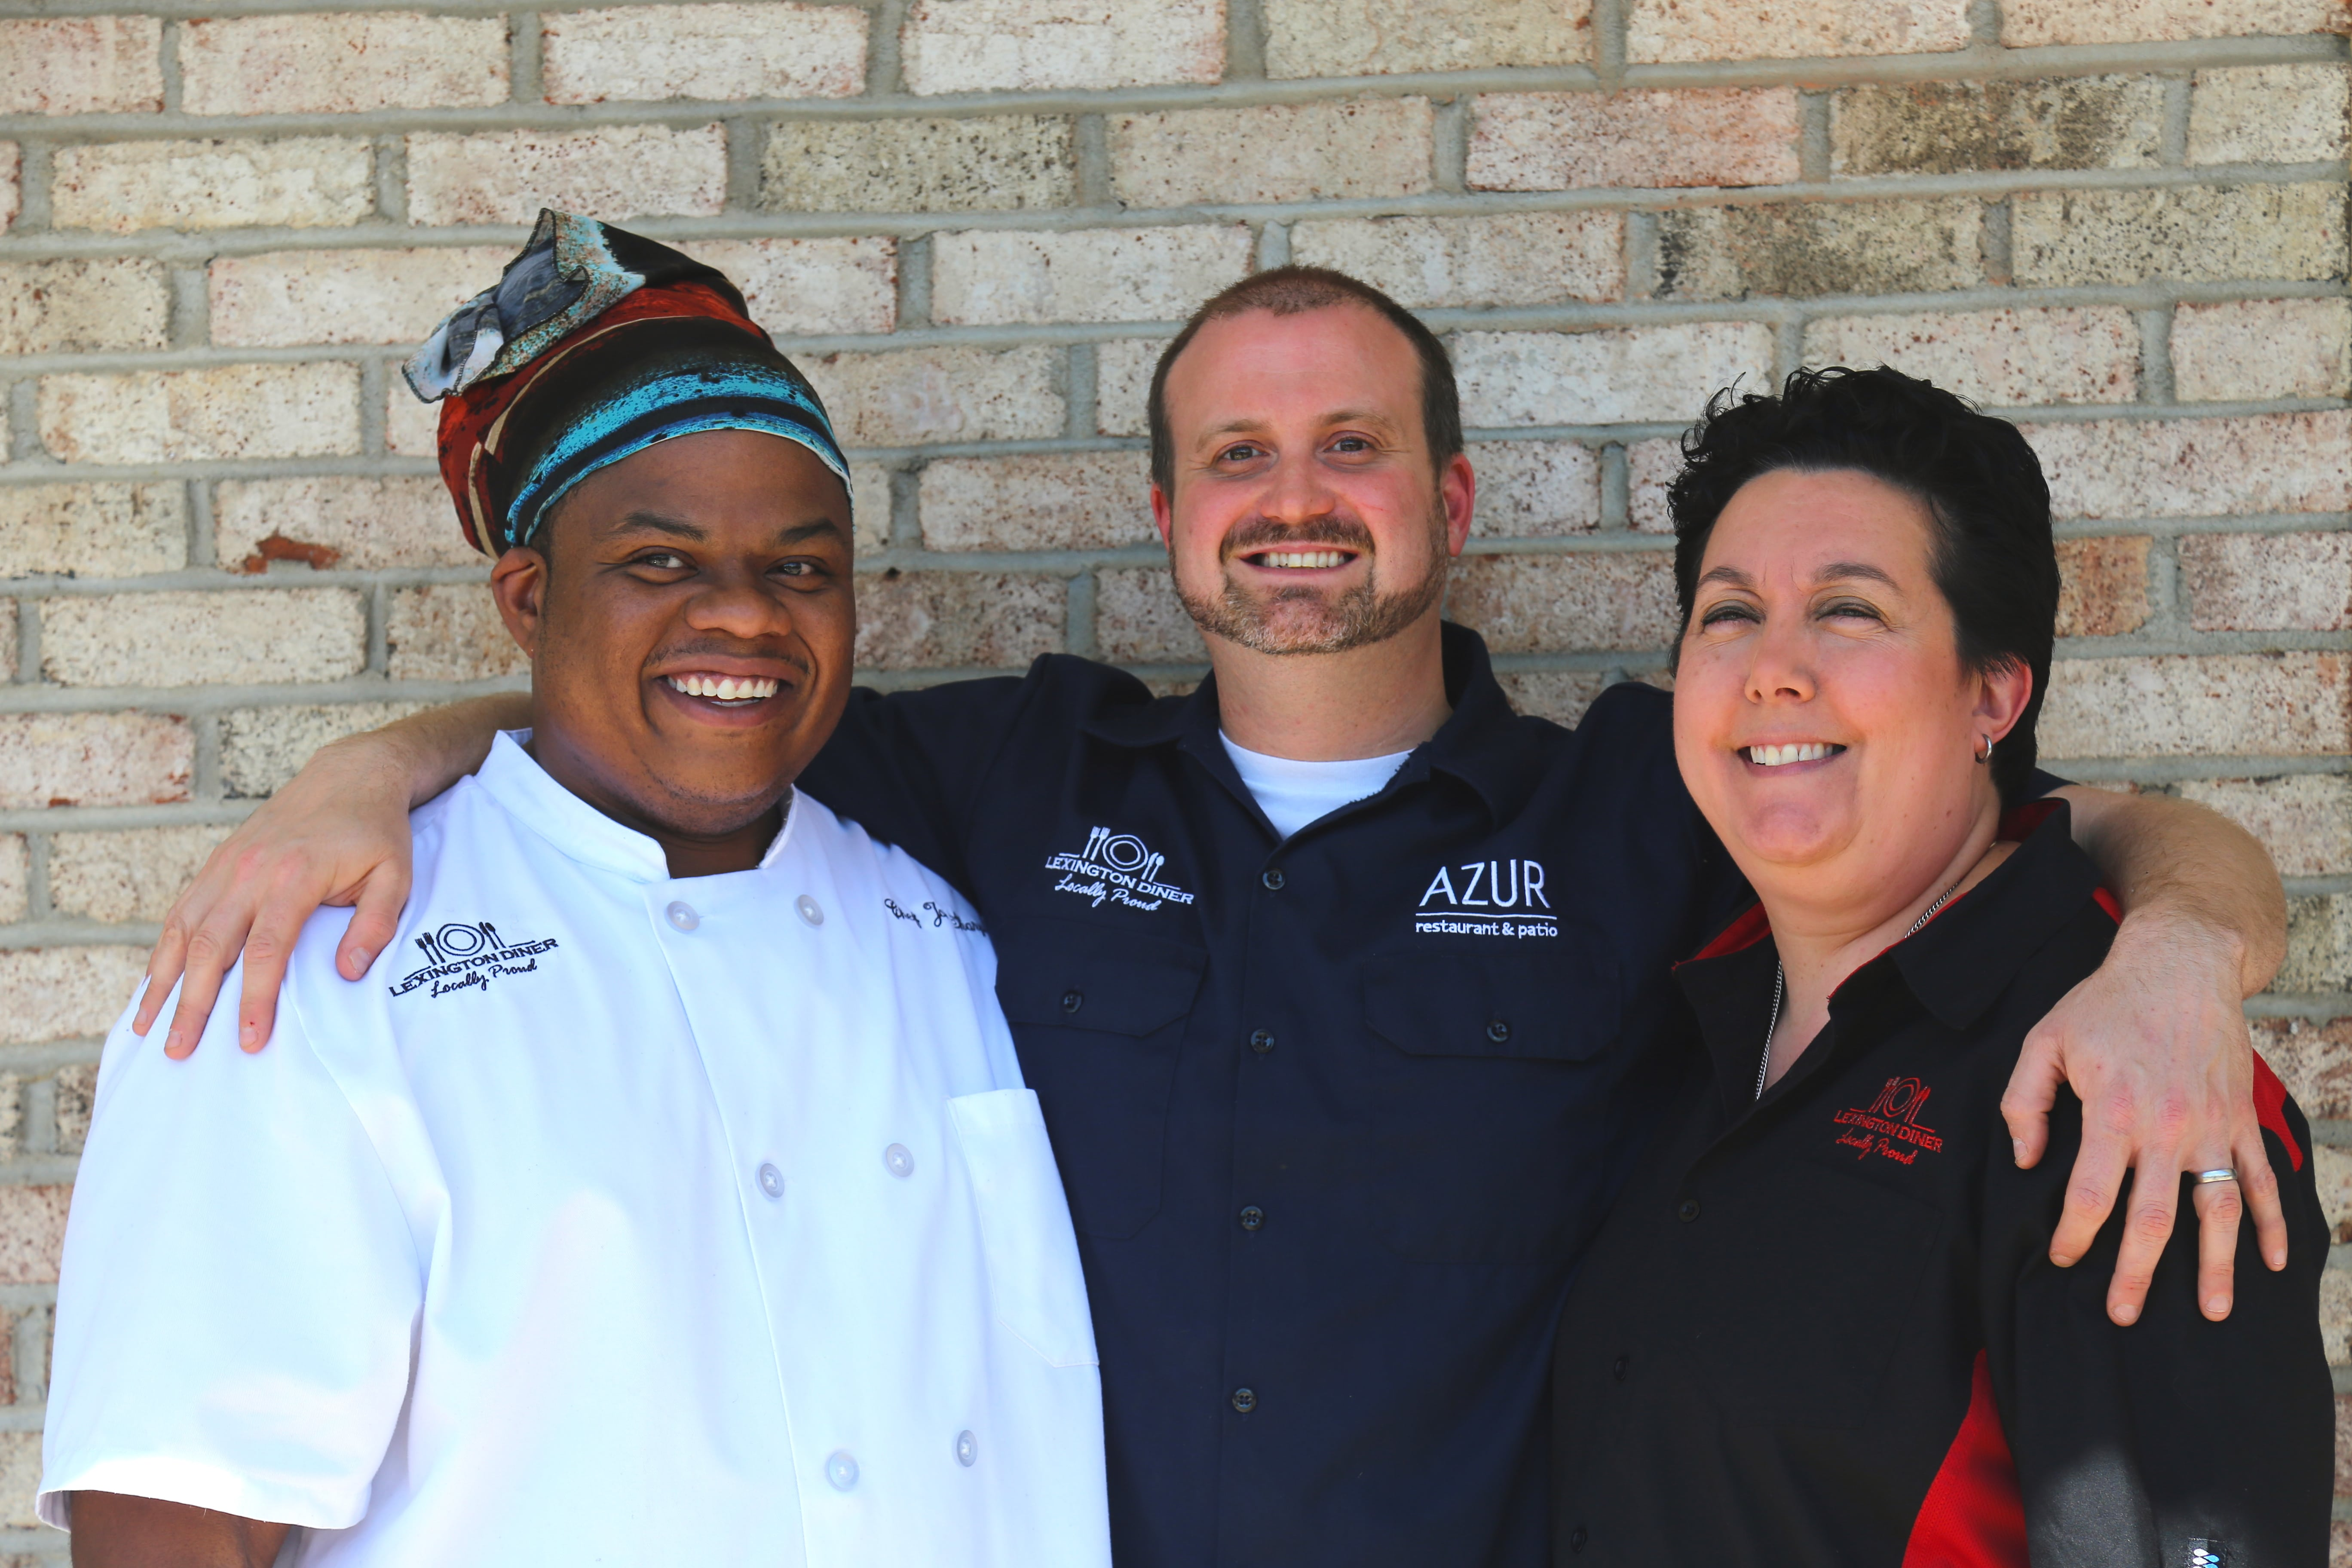 The Team of cooks for Lexington Diner